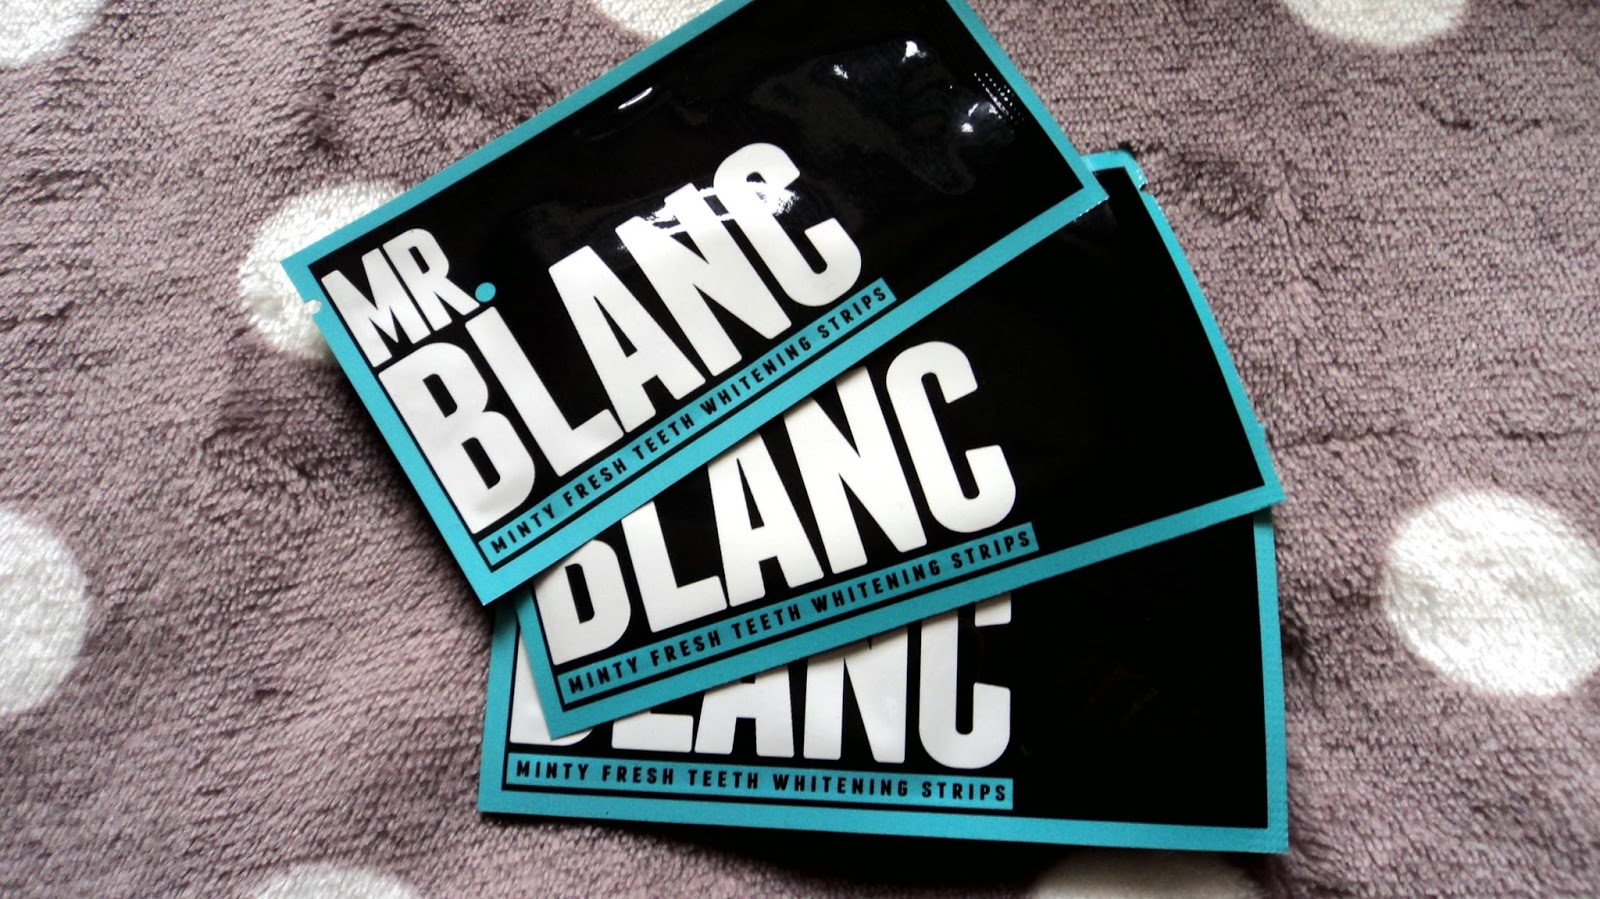 Mr. Blanc Teeth Whitening Strips Review